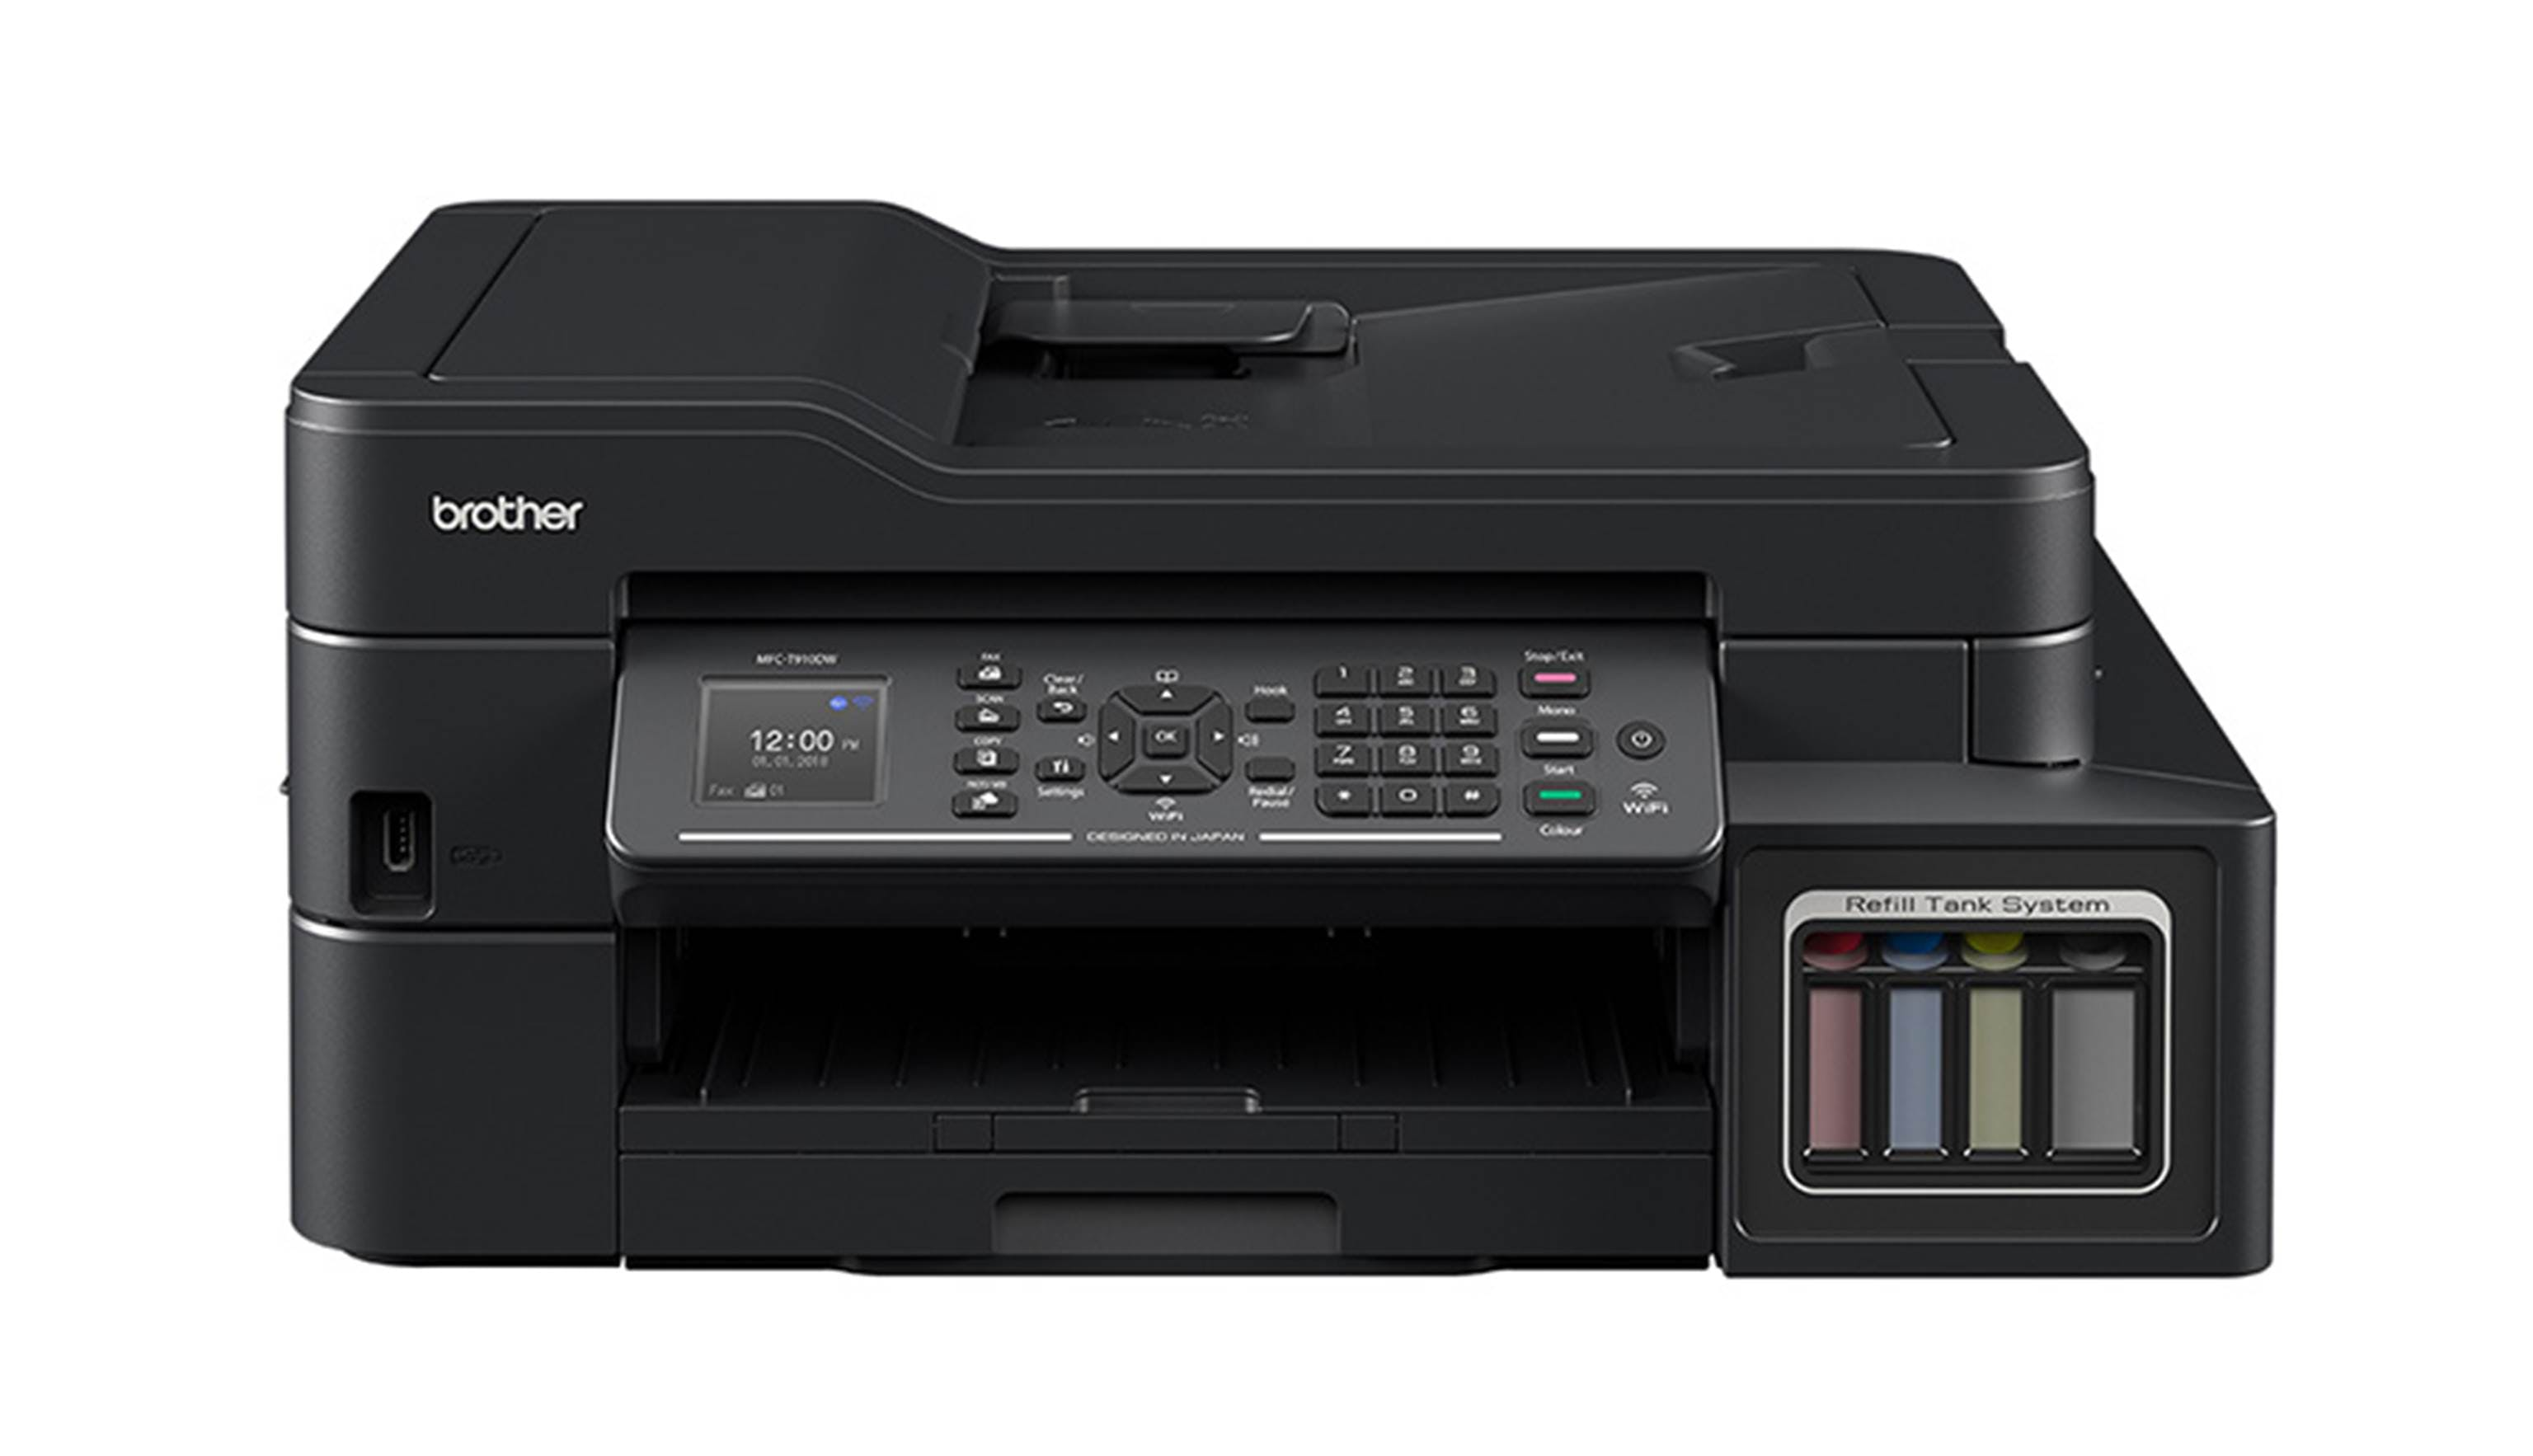 Brother MFC-T910DW All-in-One Ink Tank Printer